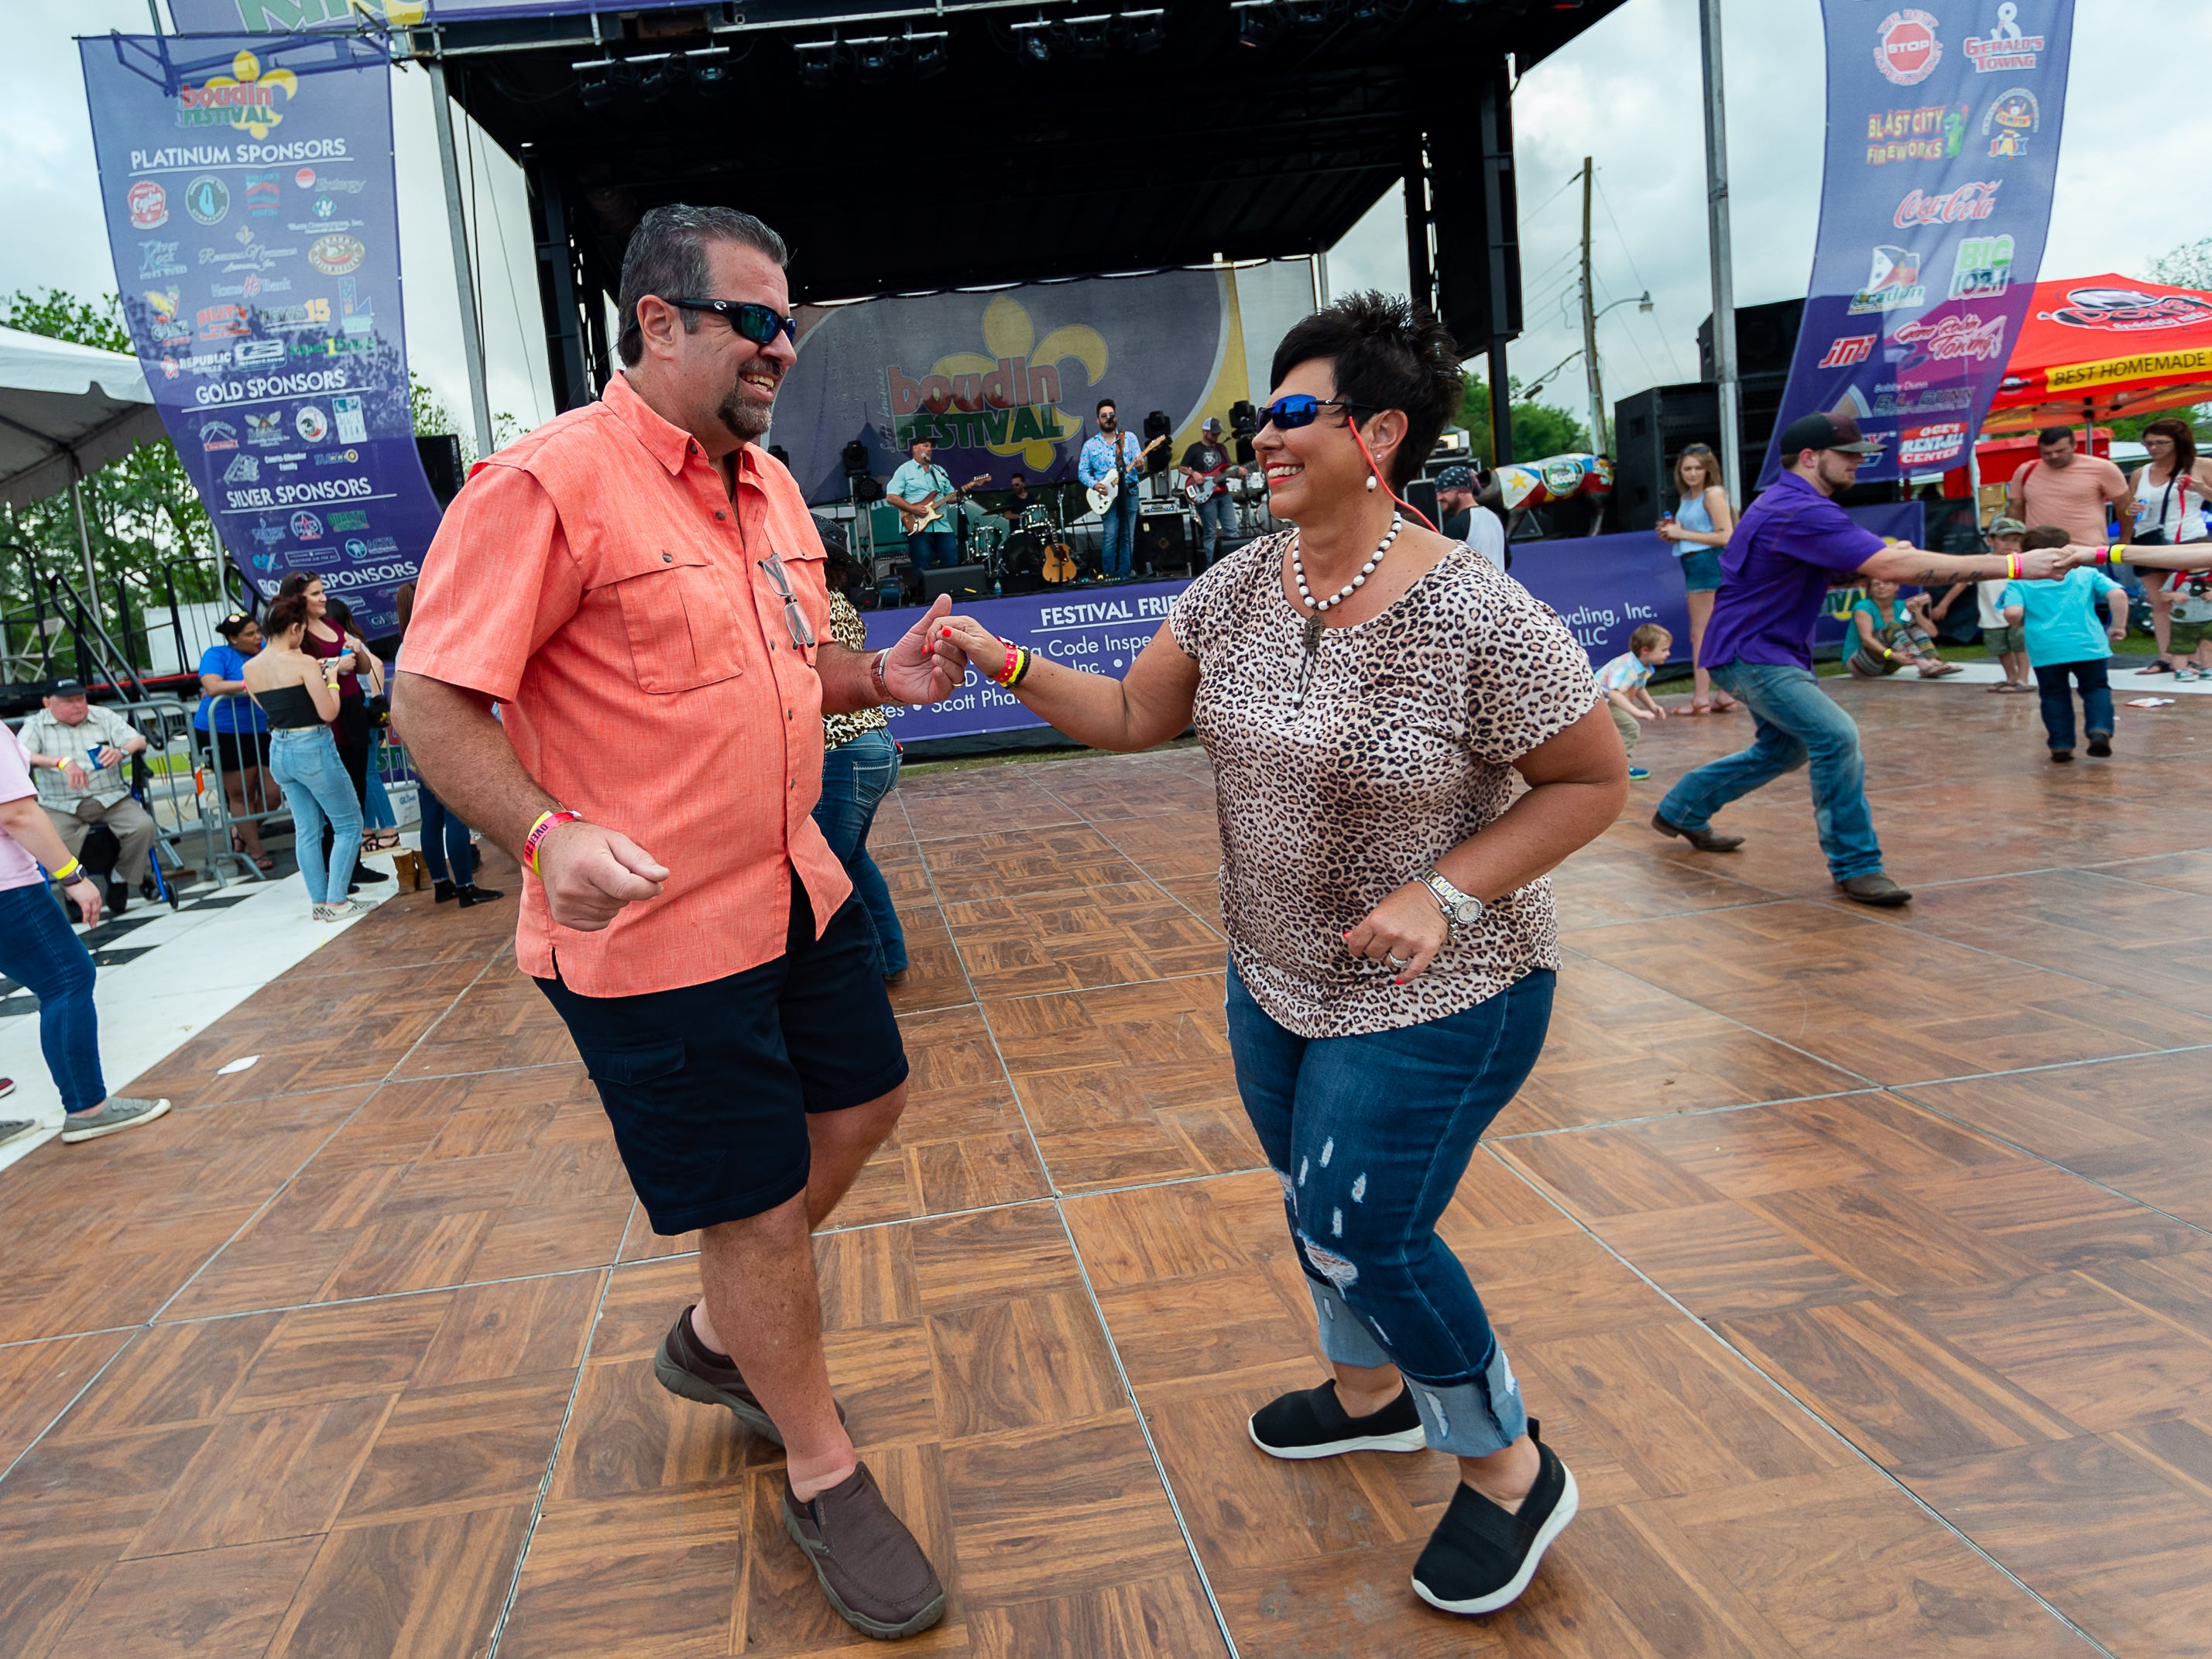 Kevin and Rena Johnson dancing as Dustin Sonnier performs at the Scott Boudin Festival. Saturday, April 6, 2019.